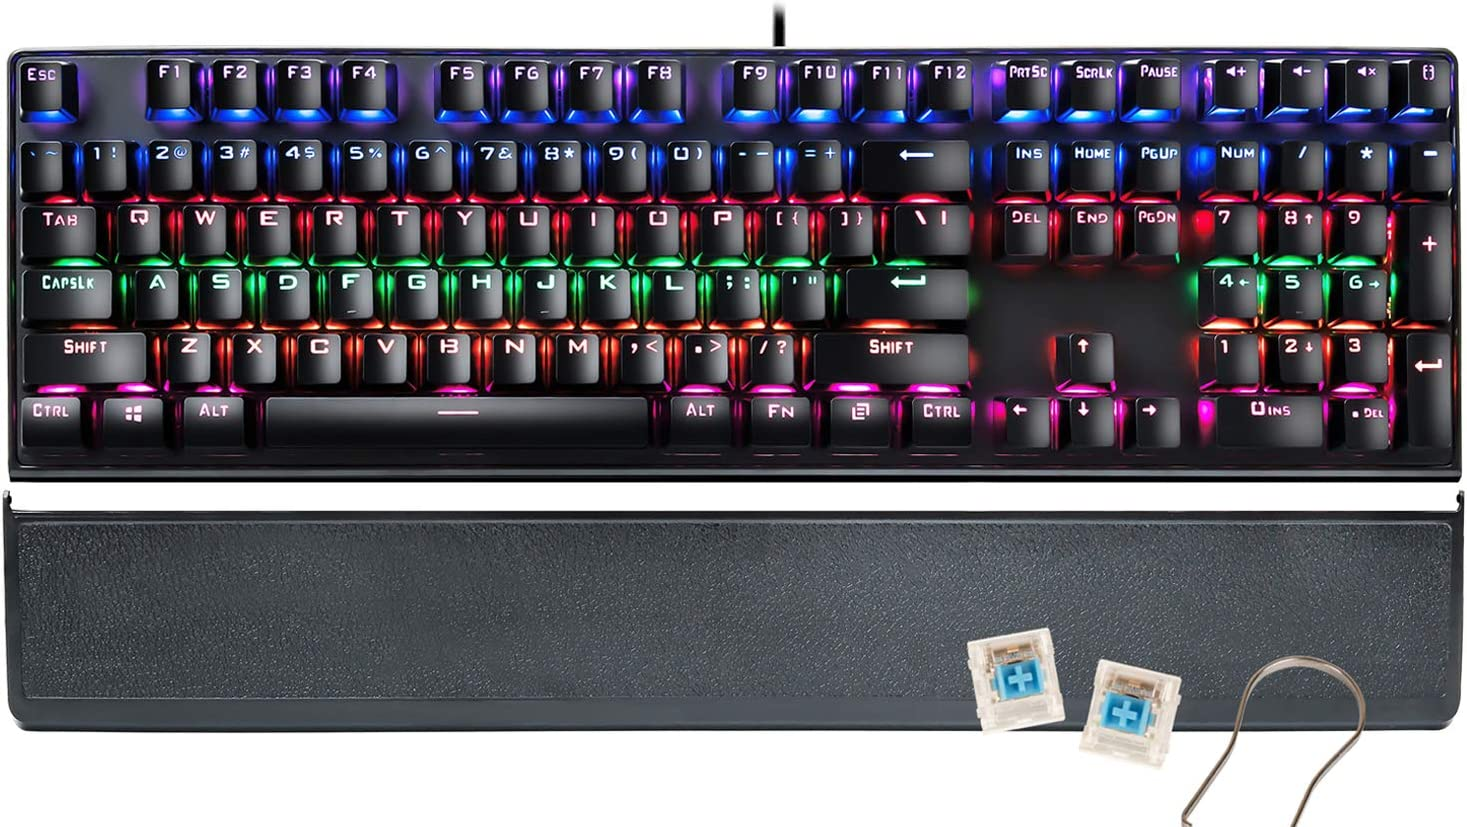 RGB Mechanical Gaming Keyboard,CHONCHOW Full-Sized Compact Mechanical Computer Keyboard USB Wired Blue Switches for Windows PC Gamers (Black)